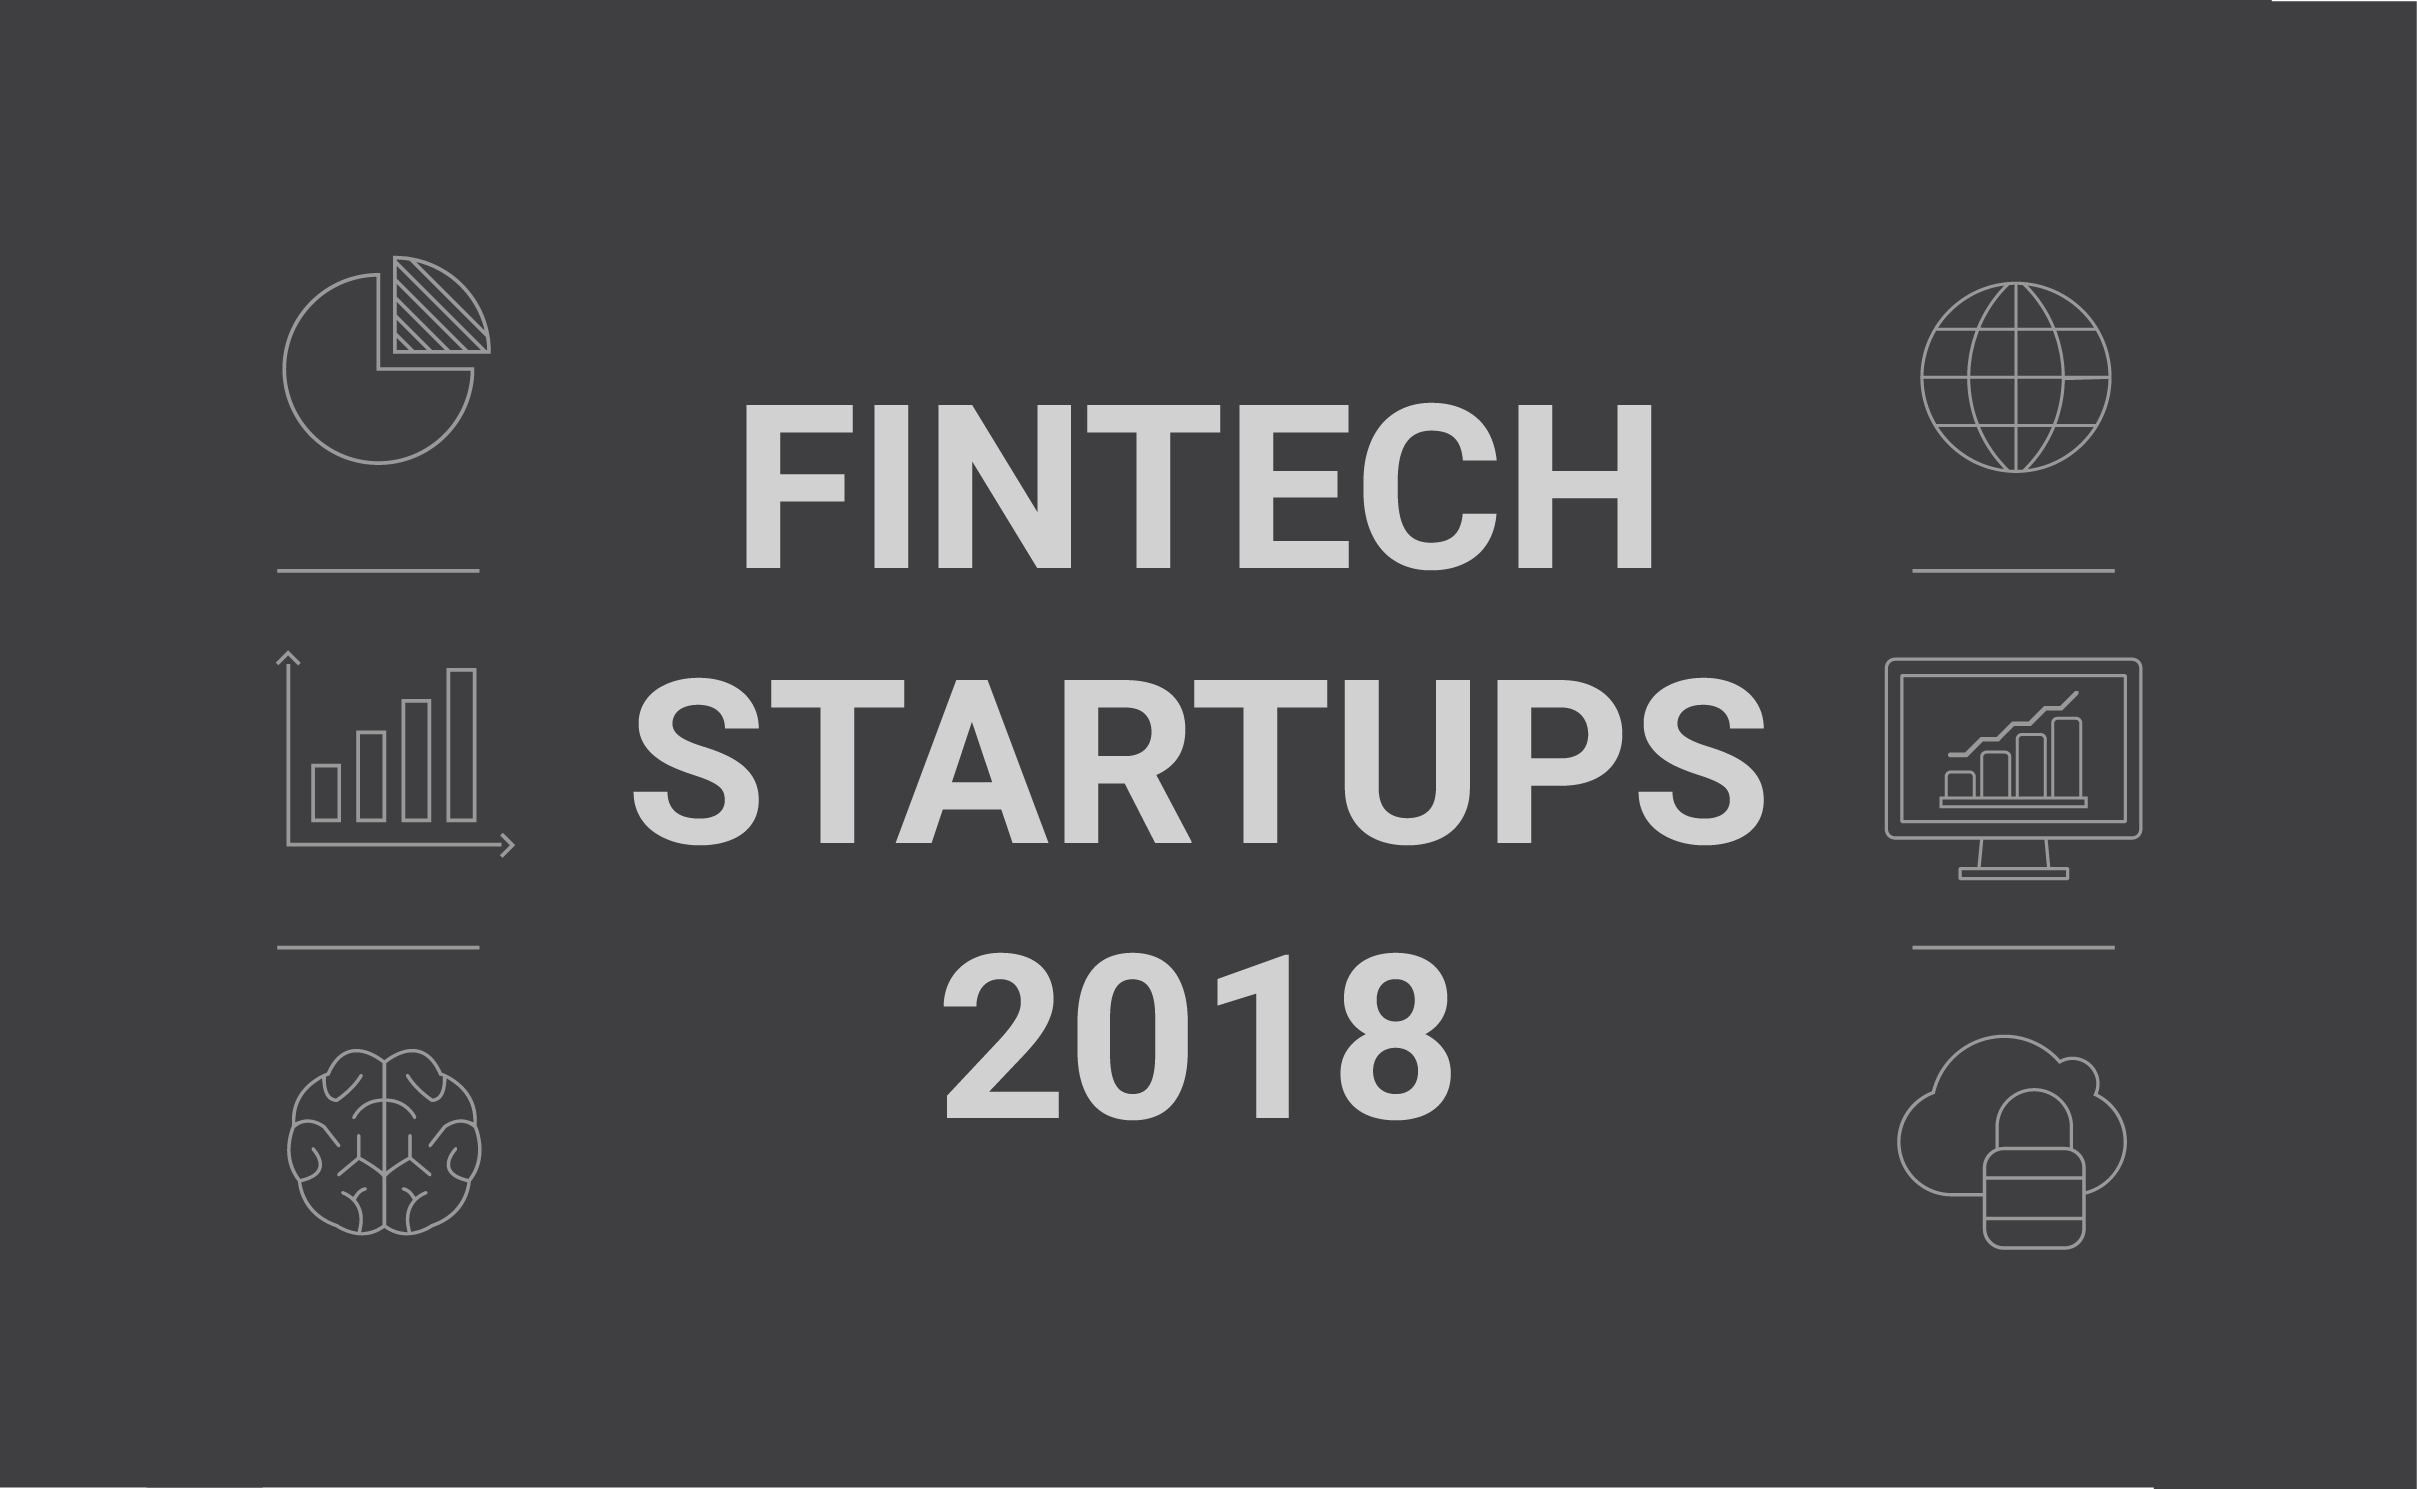 Most Interesting Fintech Startups in 2018